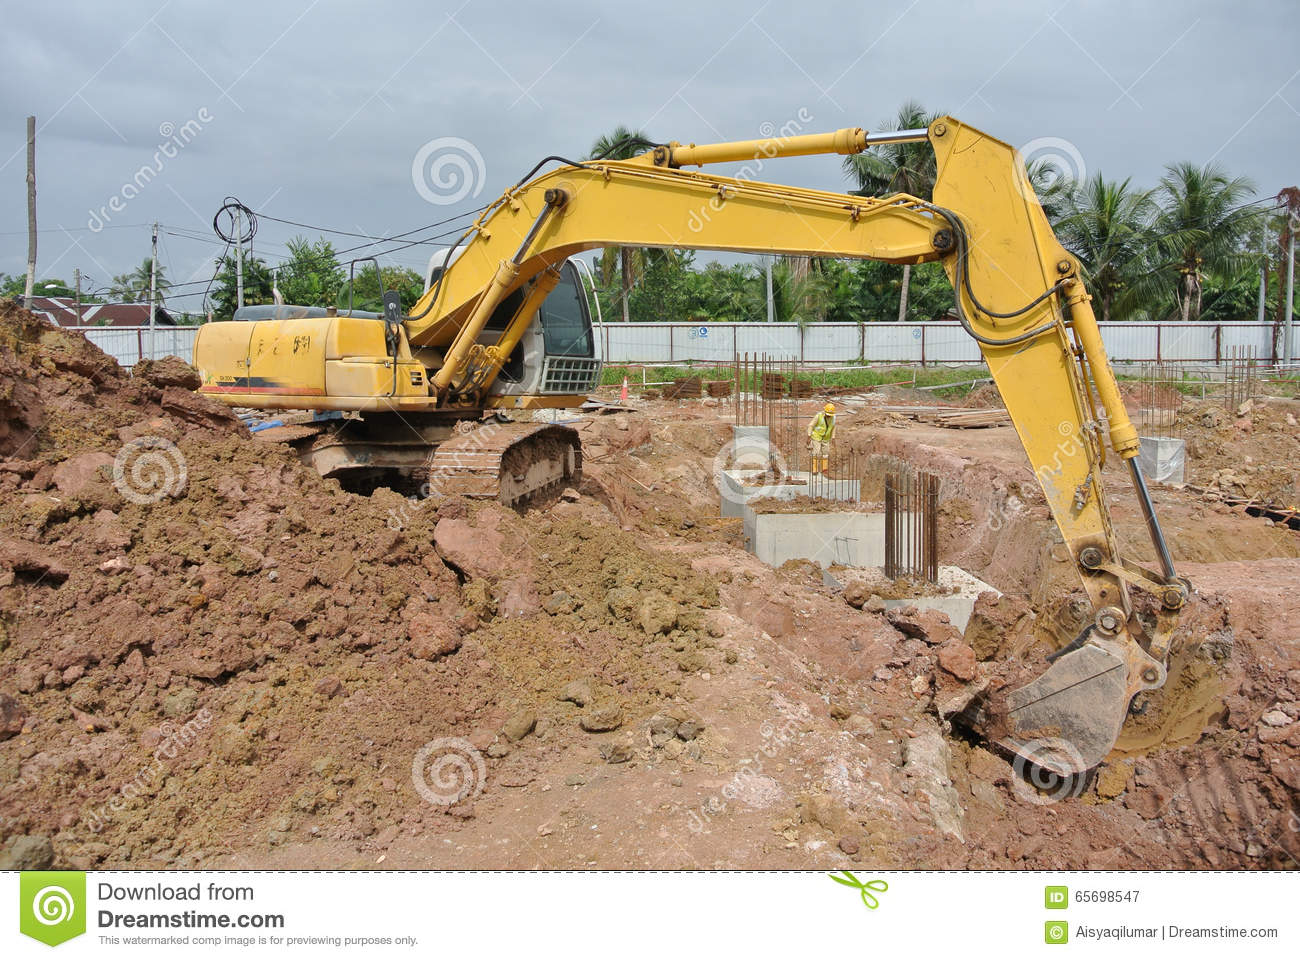 Excavator machine used to excavate soil at the for Three uses of soil